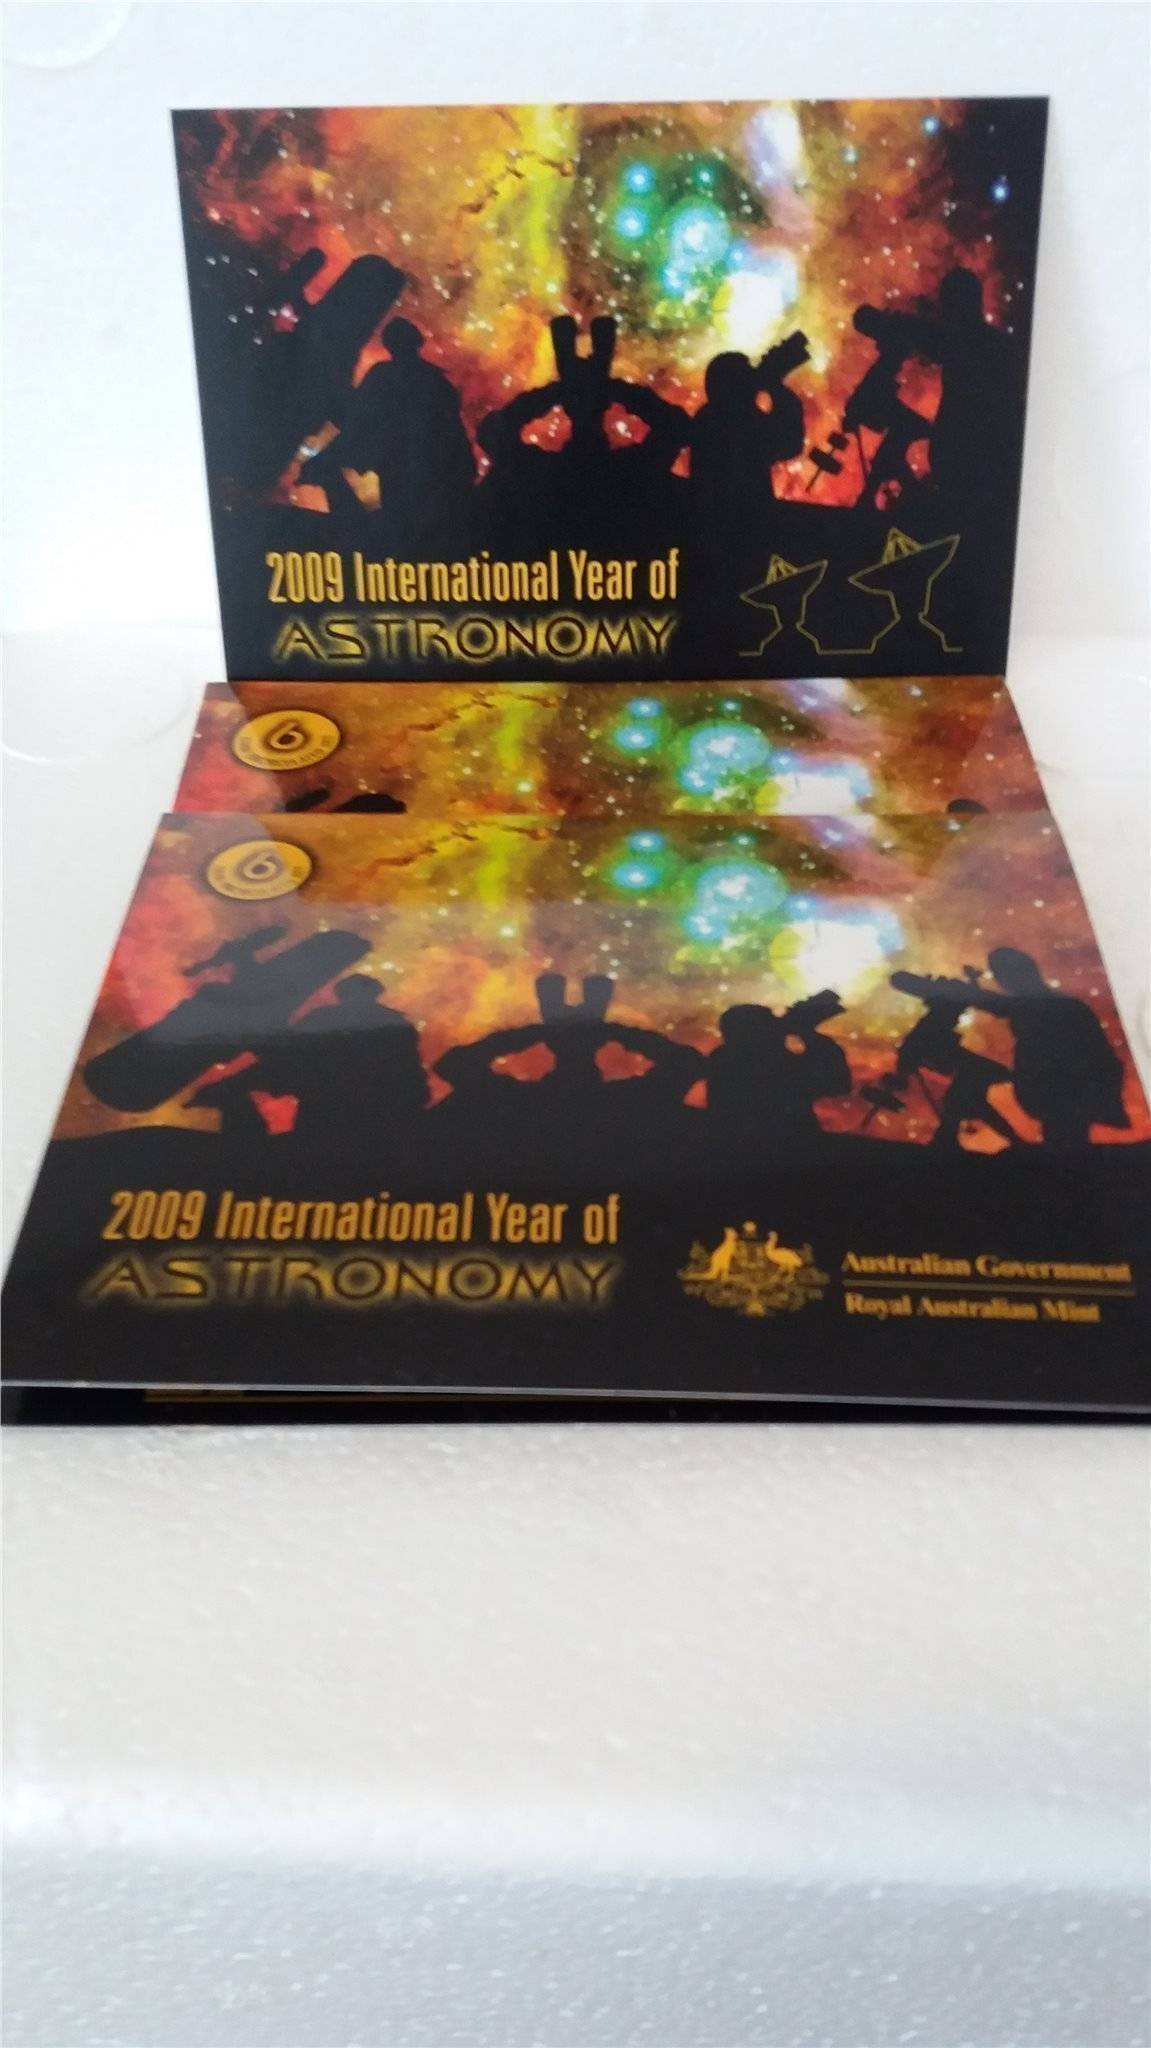 2009 International year of astronomy Australian Goverment Royal Australian Mint